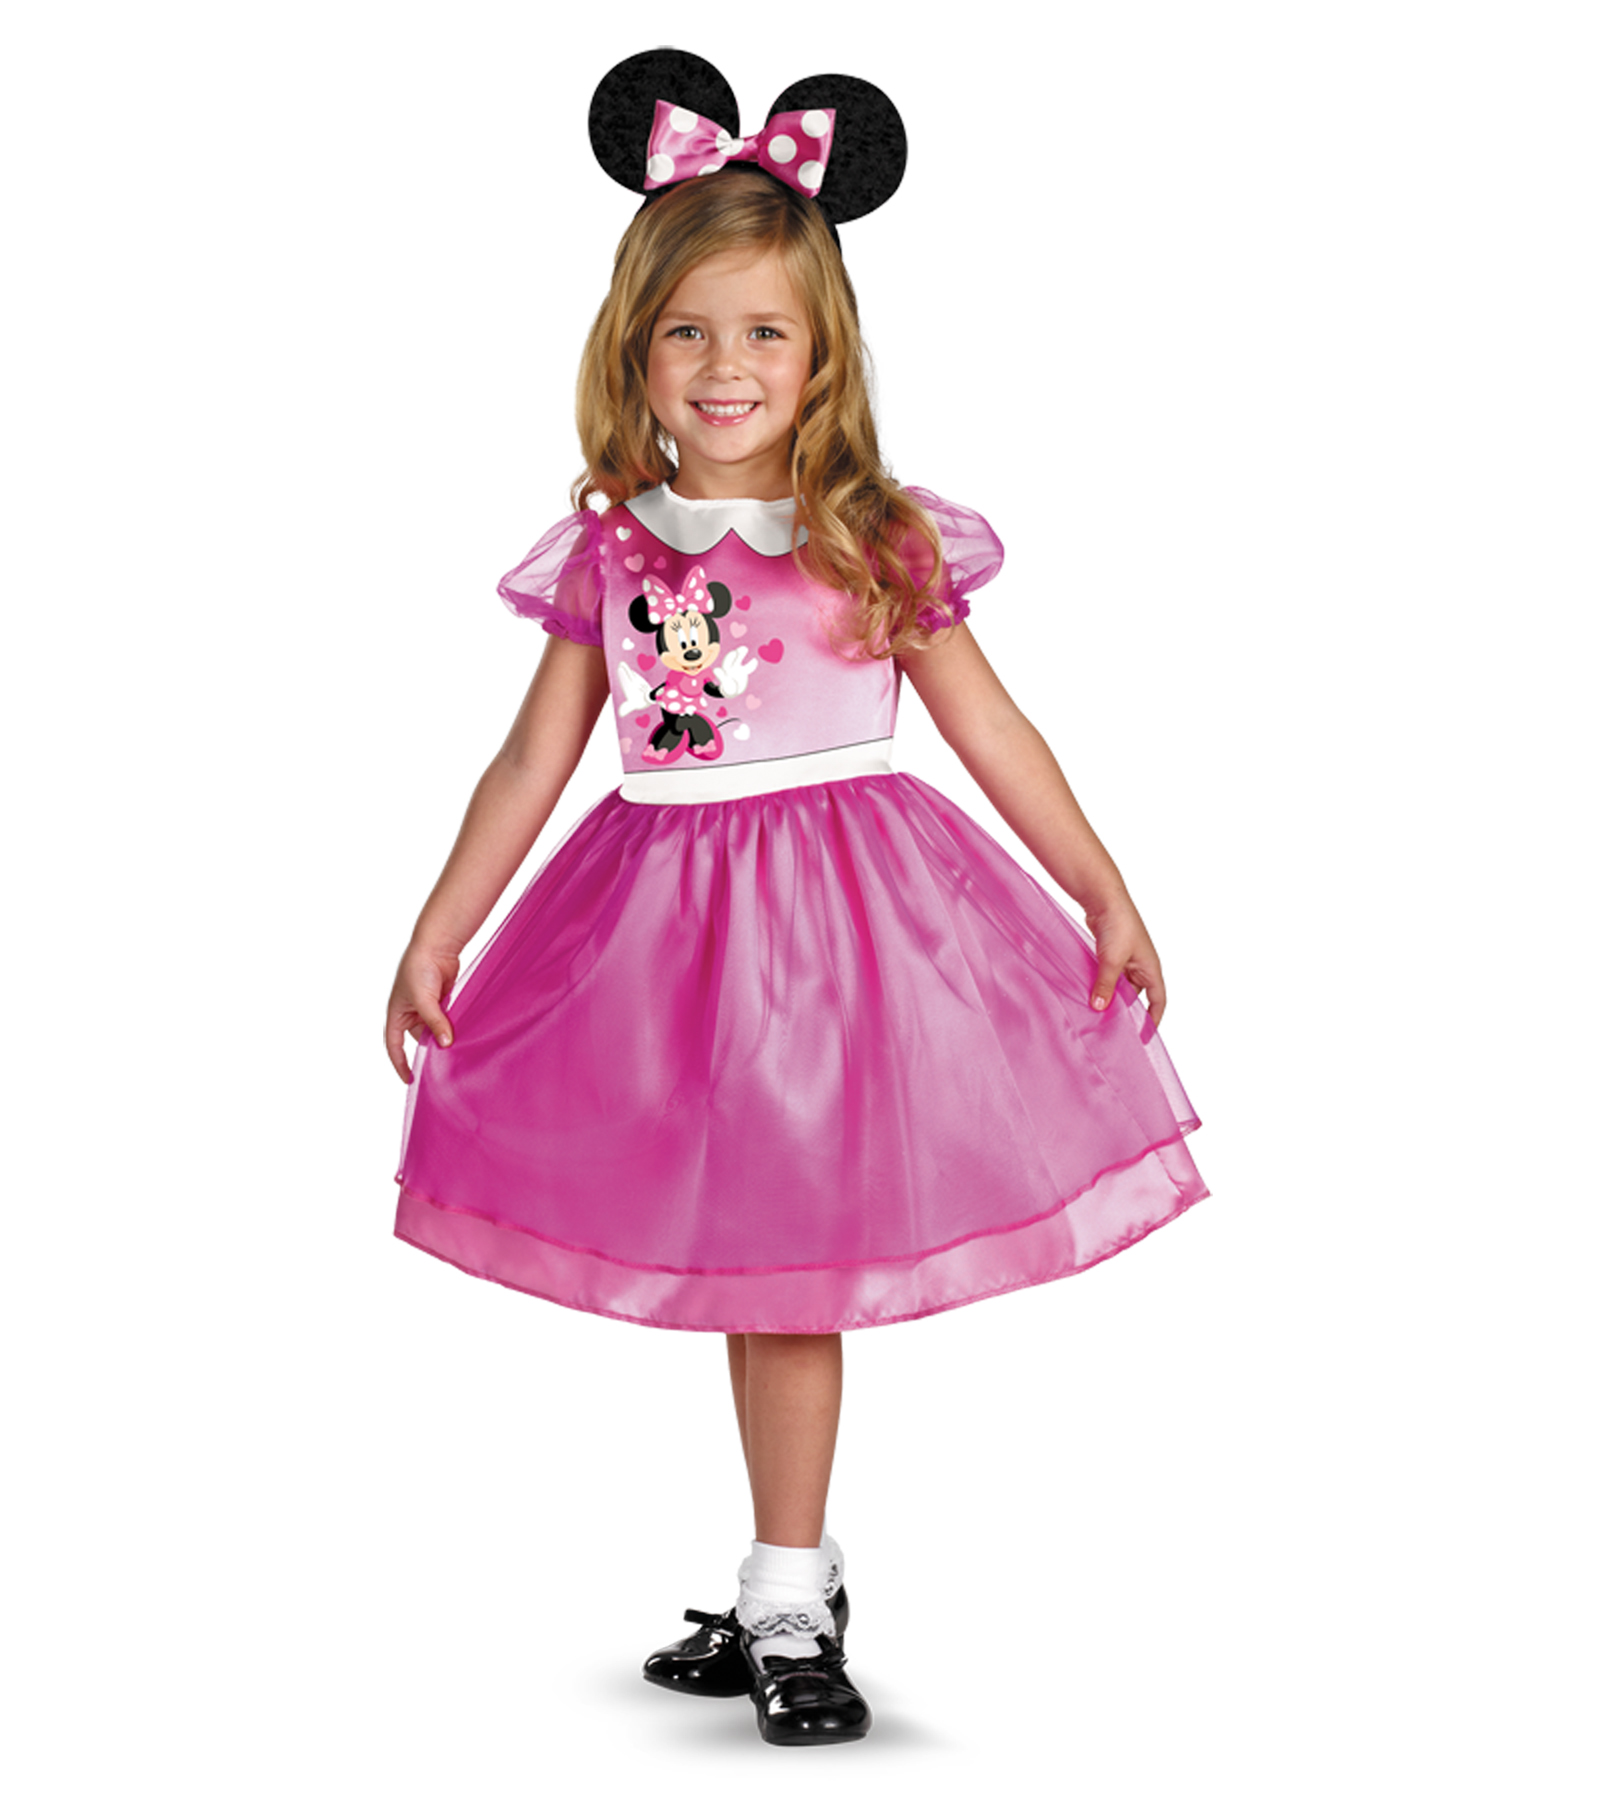 Infant Toddler Pink Minnie Mouse Halloween Costume Size 3t-4t